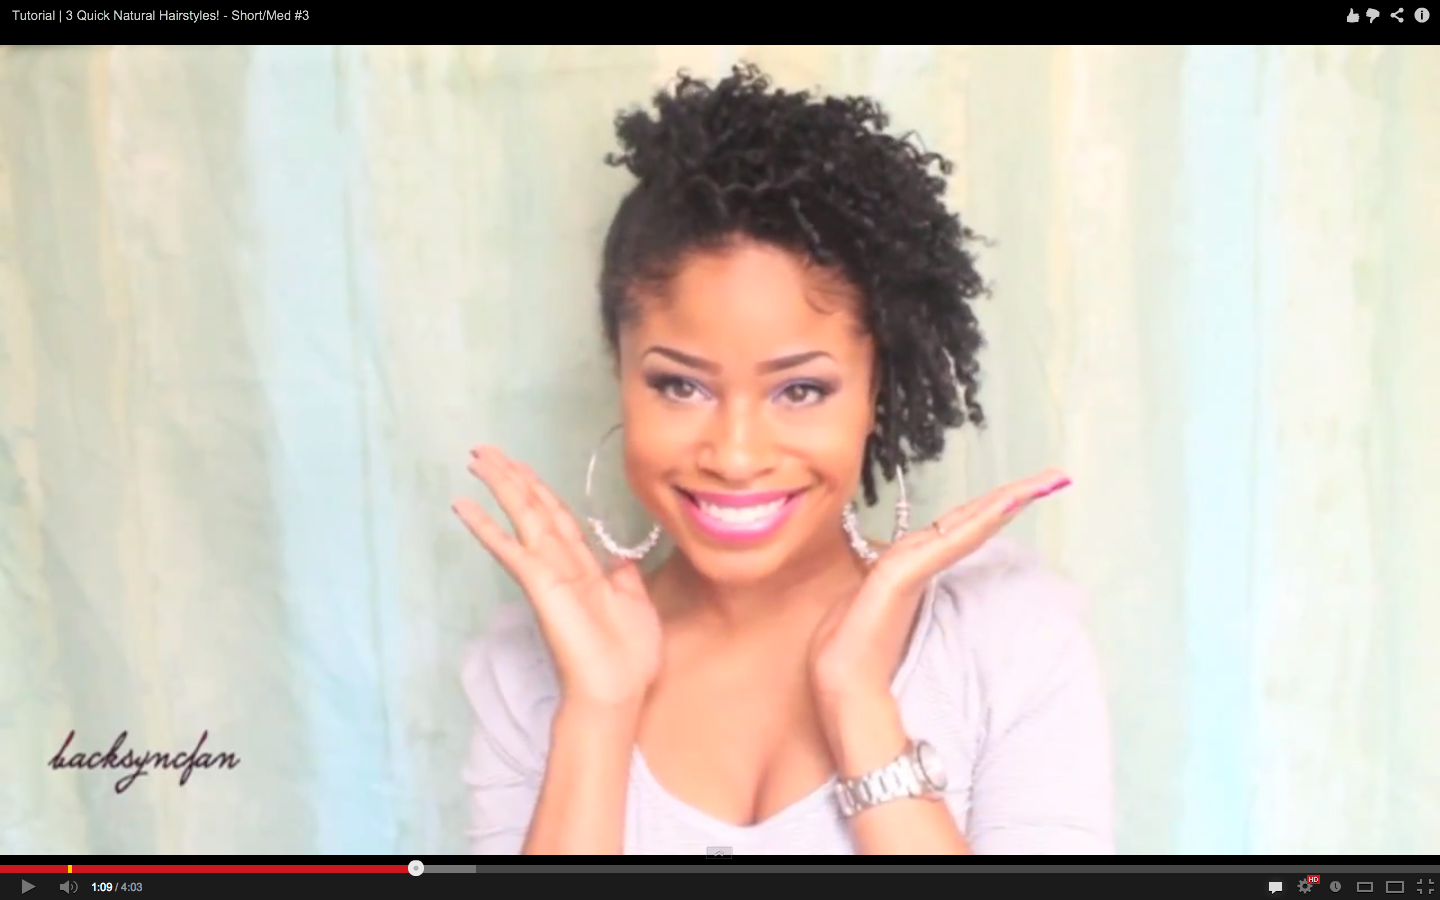 Quick Natural Hairstyles For Short Med Hair